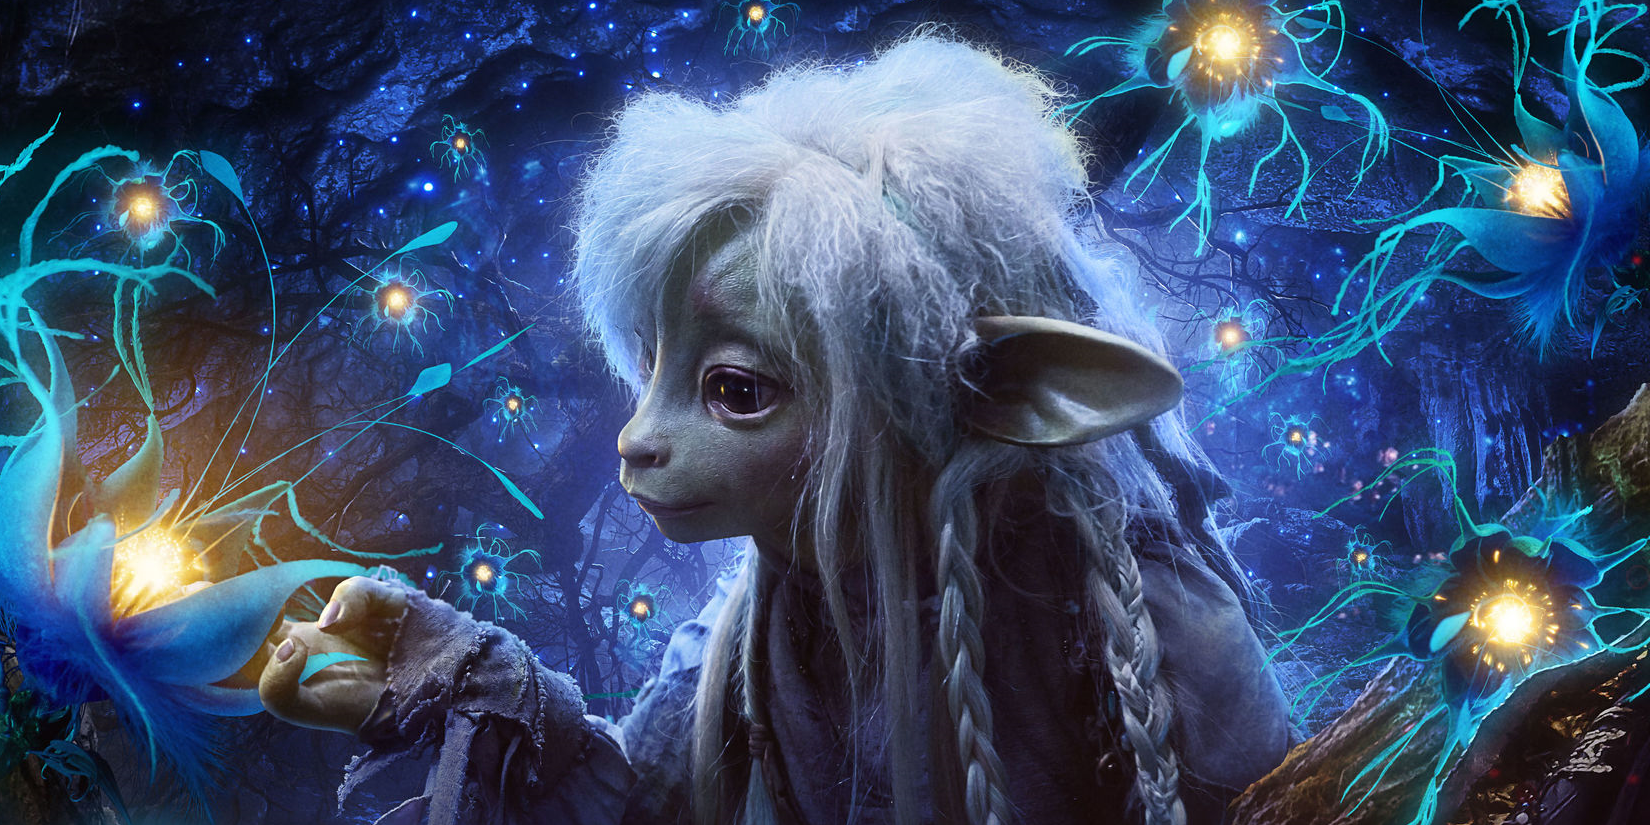 Dungeons & Dragons: Why The Dark Crystal's Gelflings Make Great Gnomes